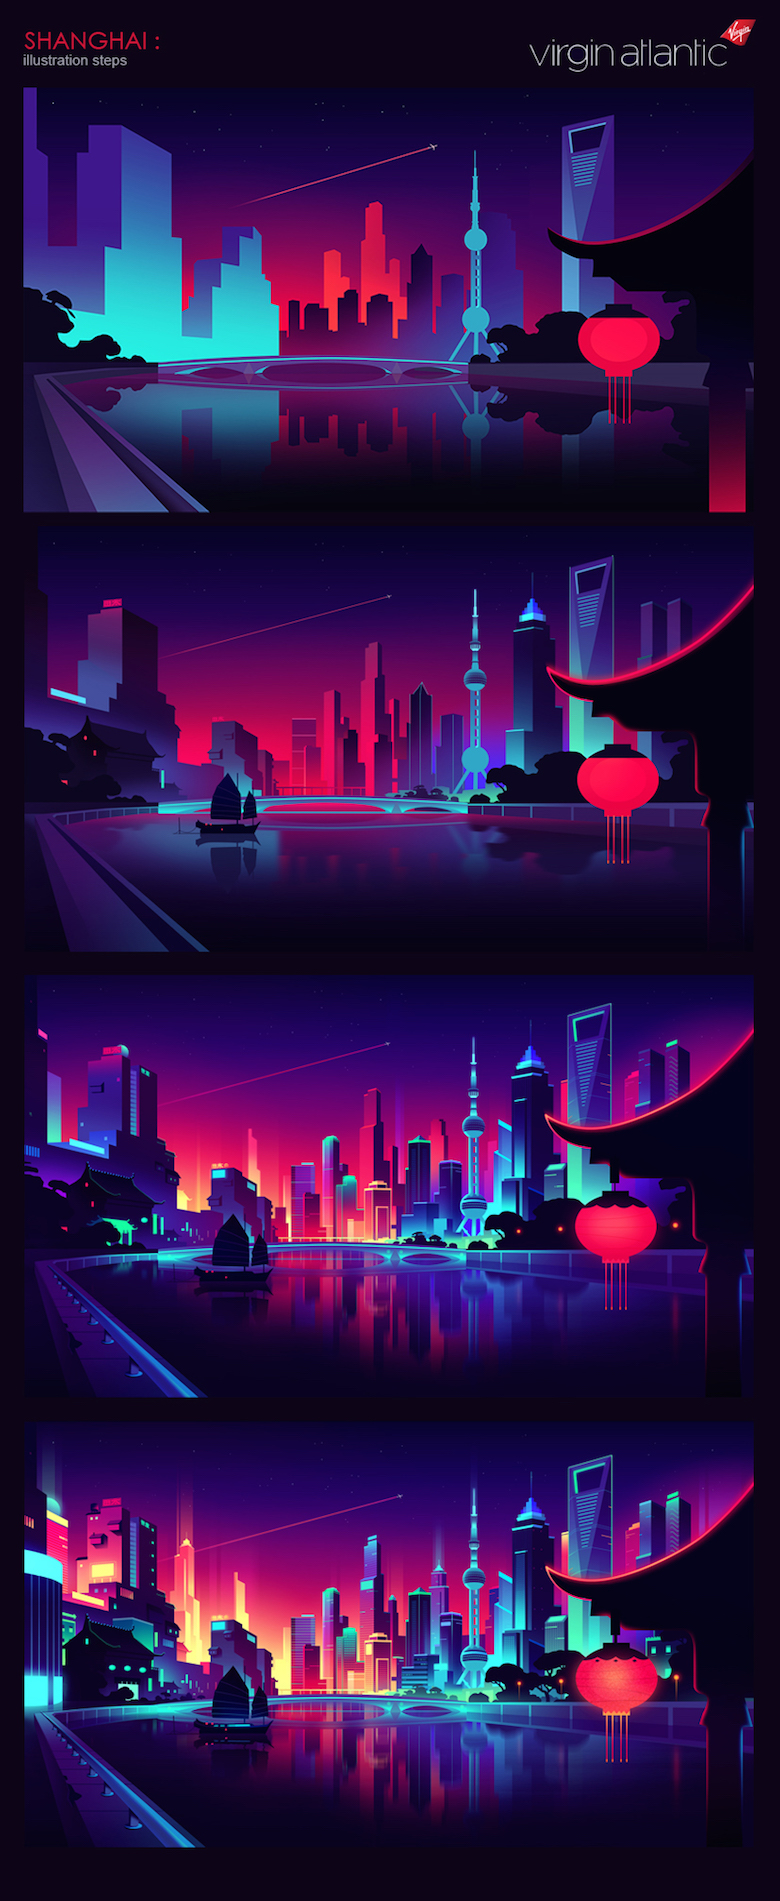 Colorful architecture skyline and cityscape illustrations - Virgin Atlantic: Shanghai